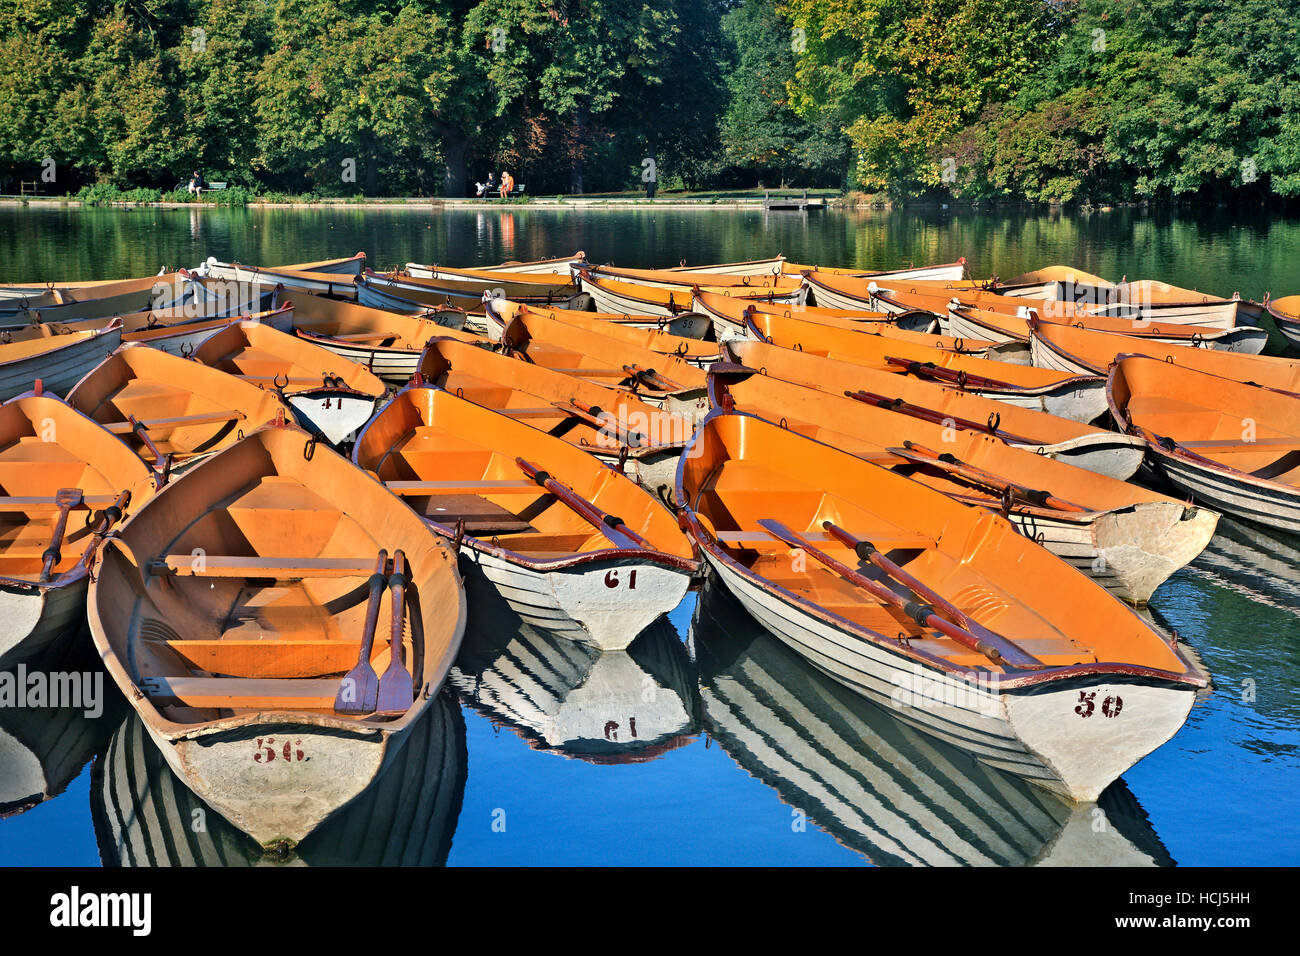 Boats for hire in the Forest of Boulogne (Bois de Boulogne), Paris, France. - Stock Image